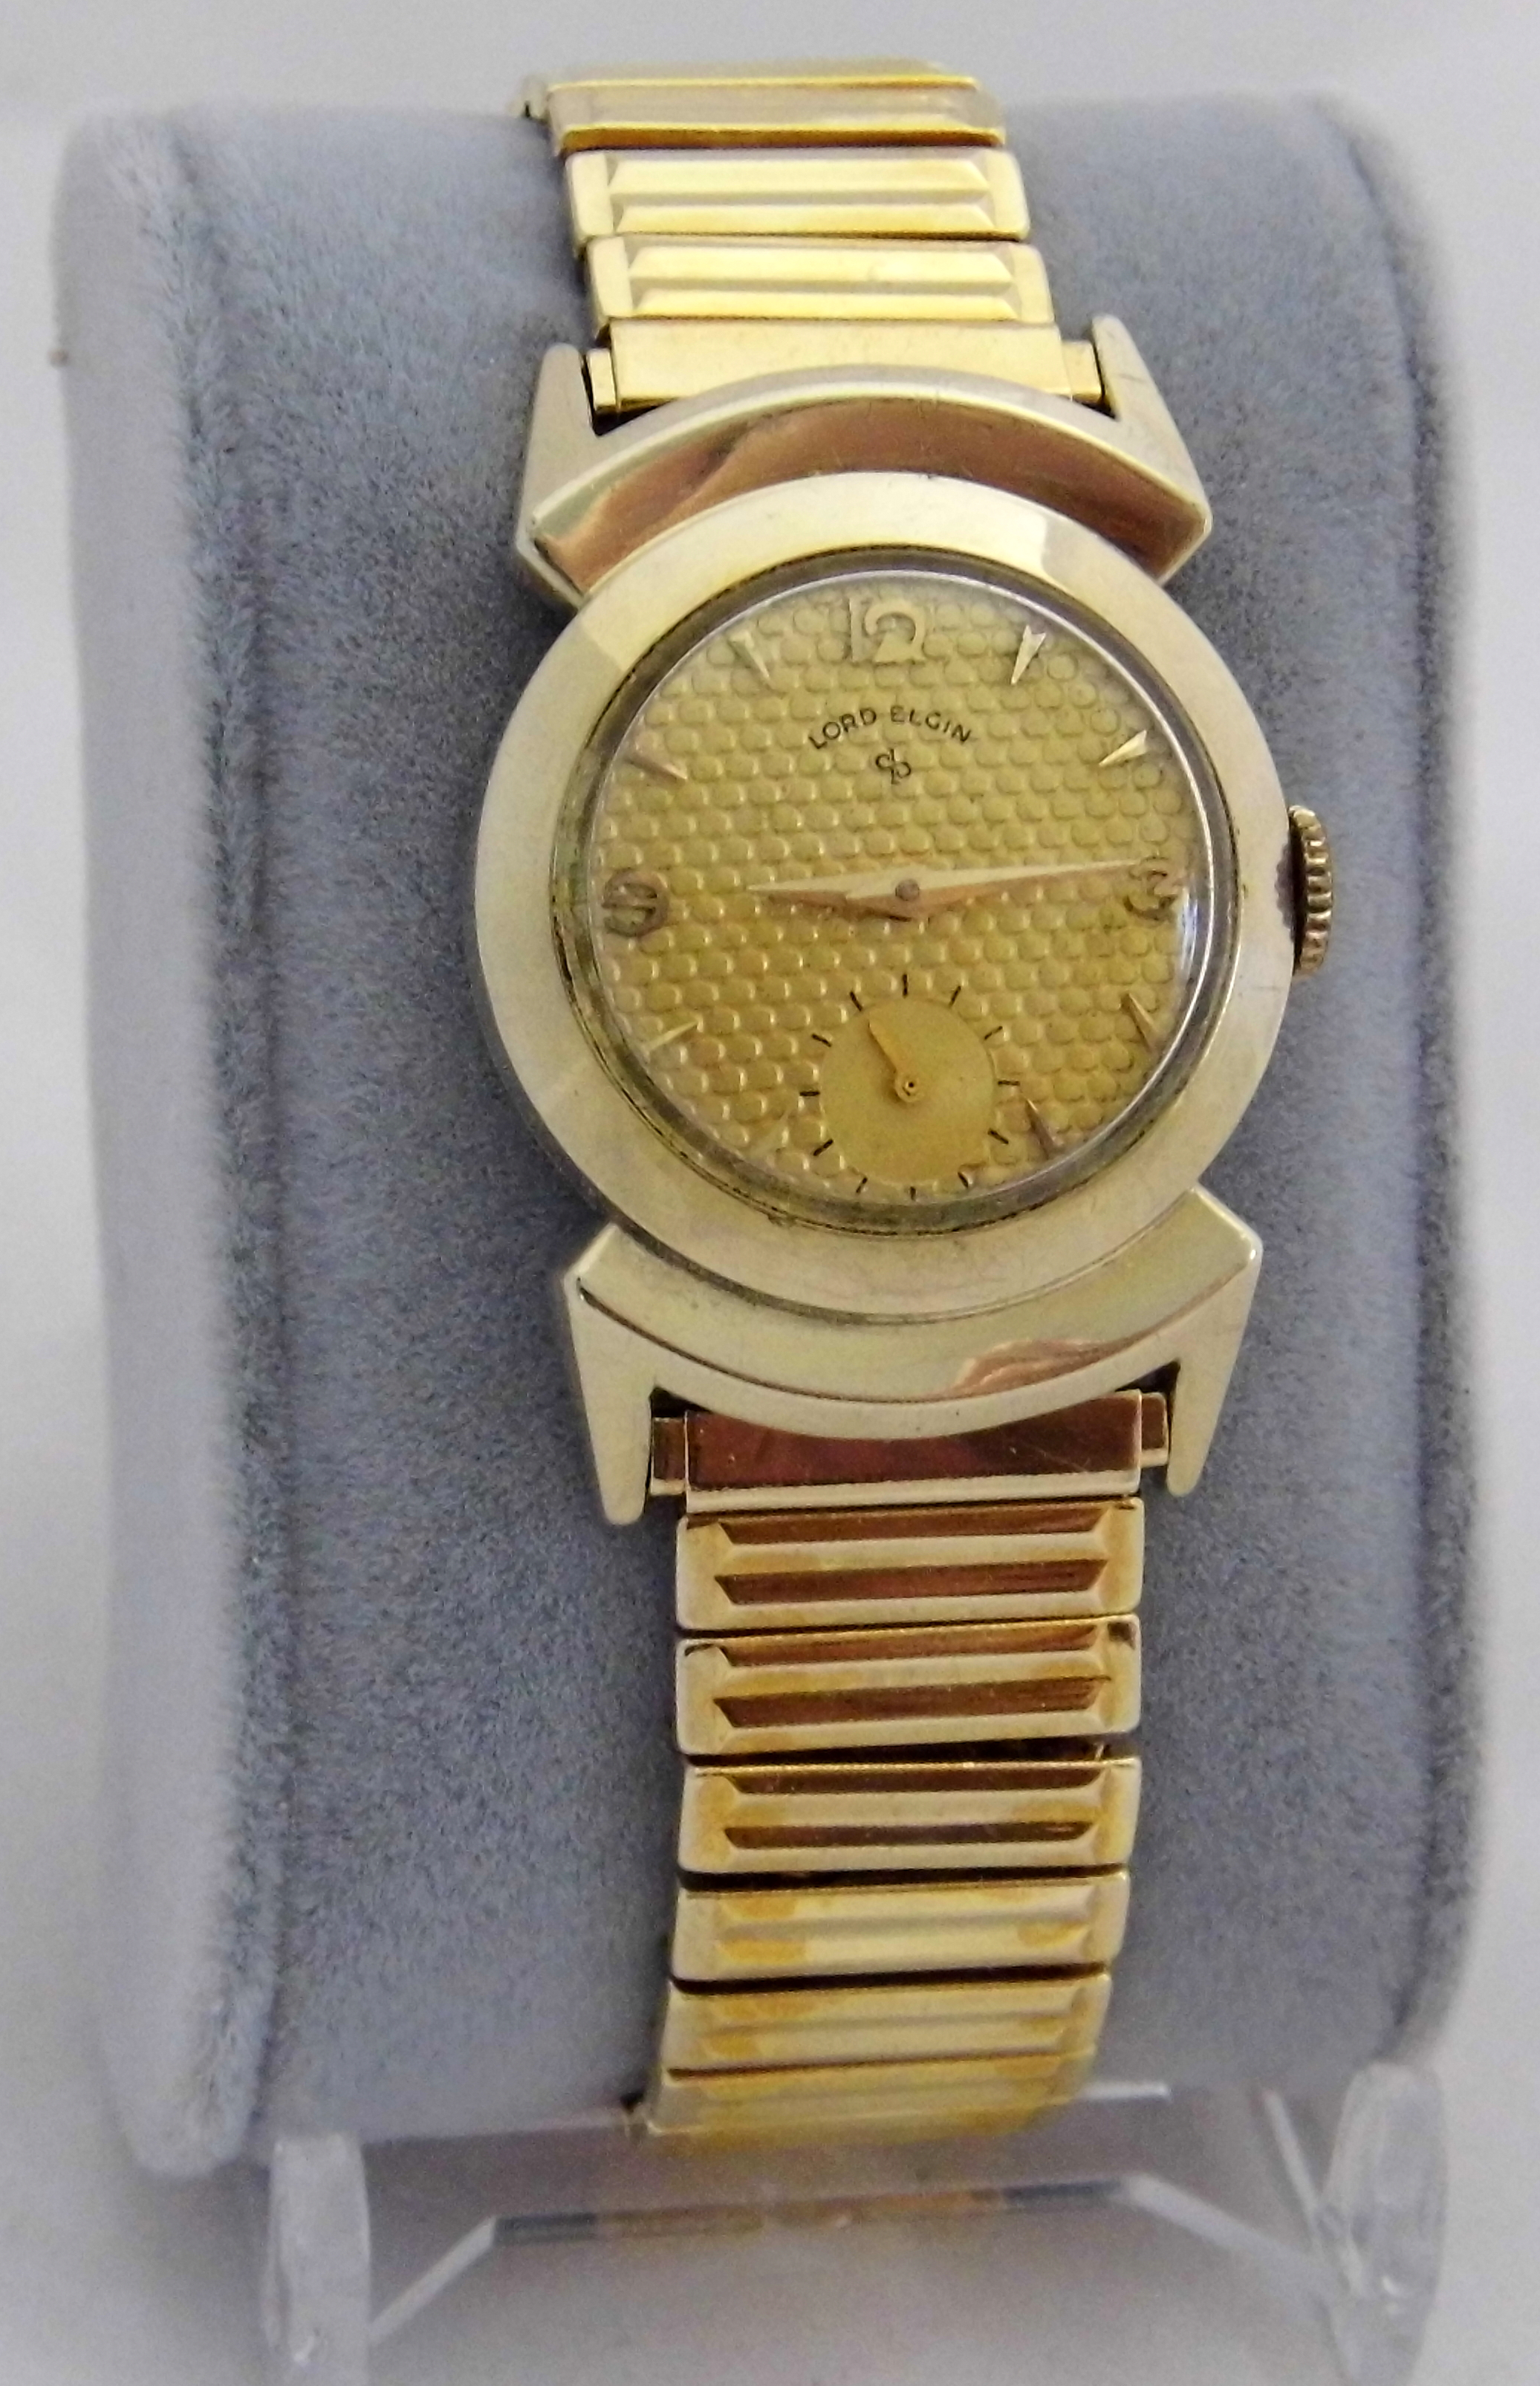 mechanical watch gold s il p longines vintage watches fullxfull home in product wrist original filled